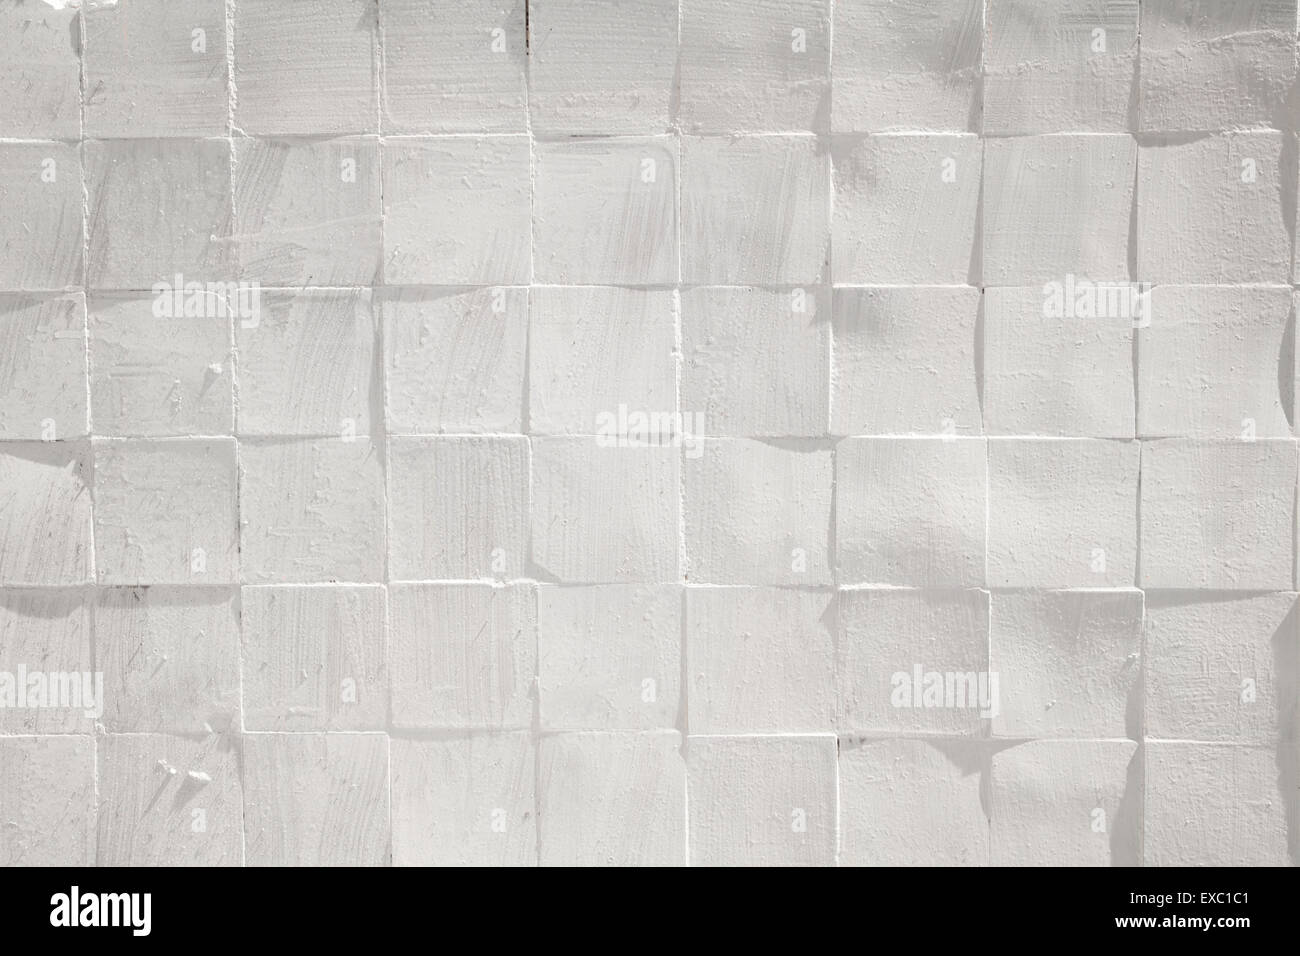 Square Tiles White Rough Textured Wall Pattern Background